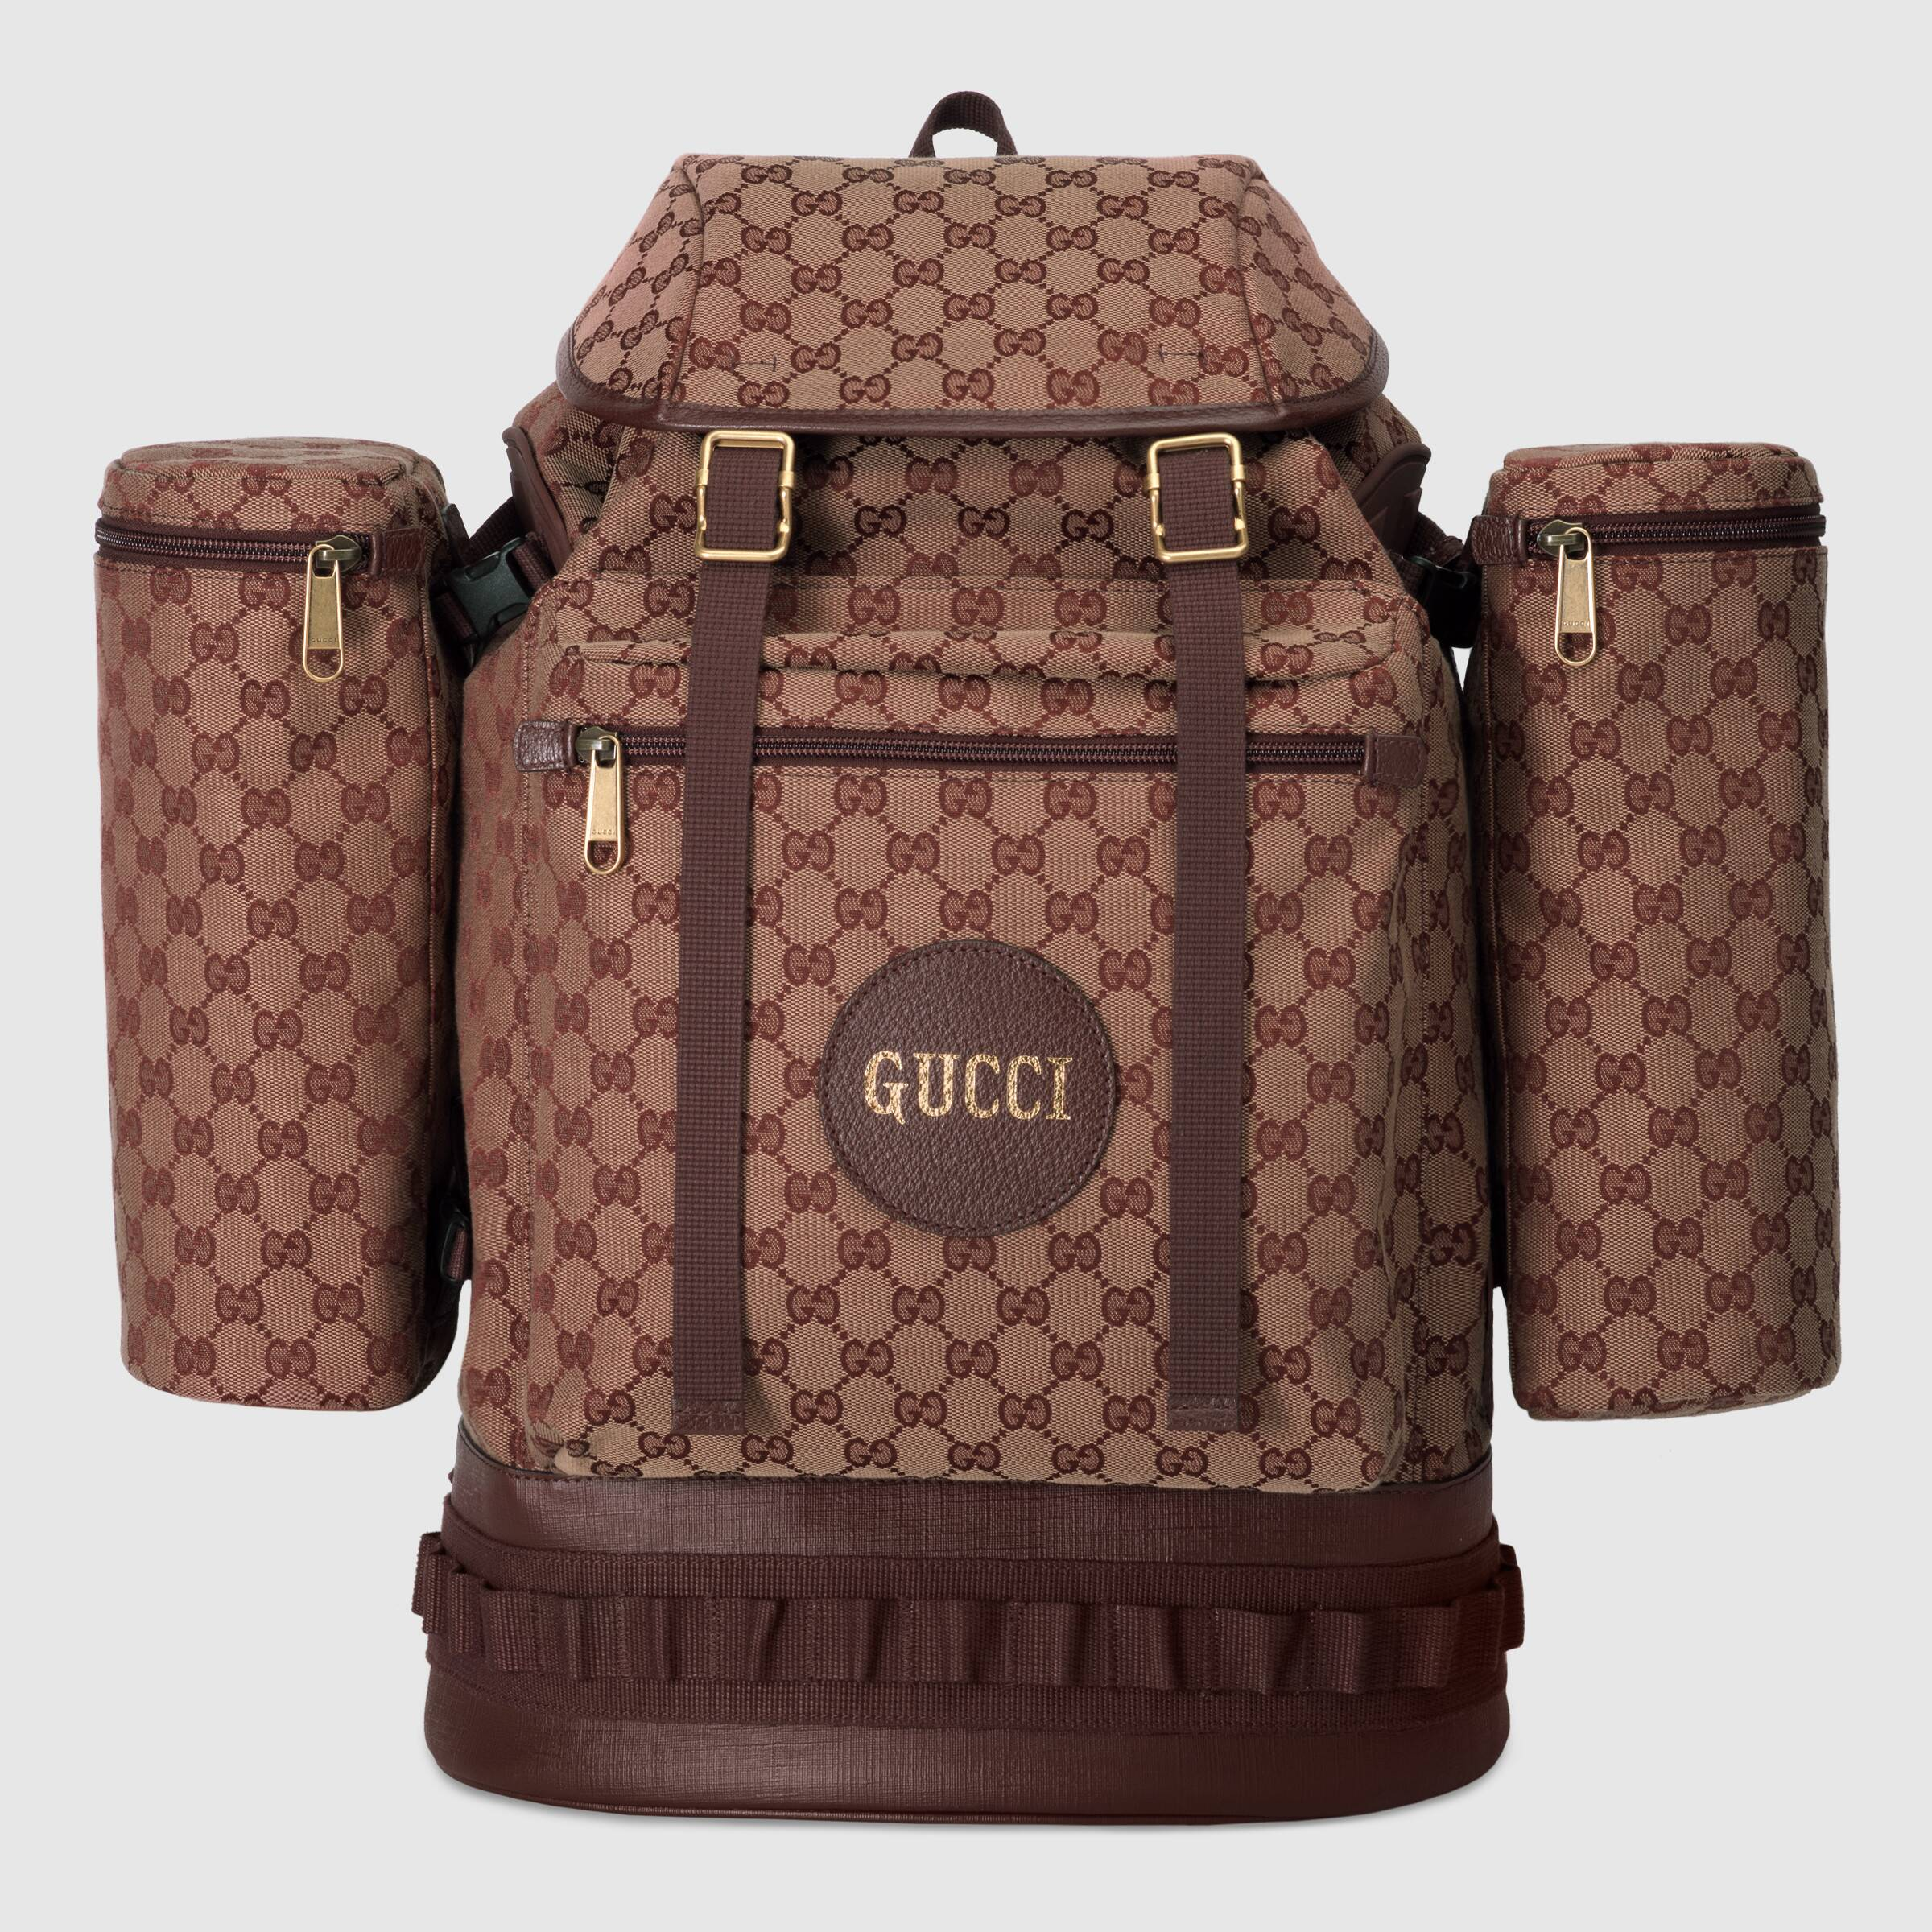 Gucci large canvas backpack - £1,770 - For those that feel the need to carry everything (including the kitchen sink) with them at all times